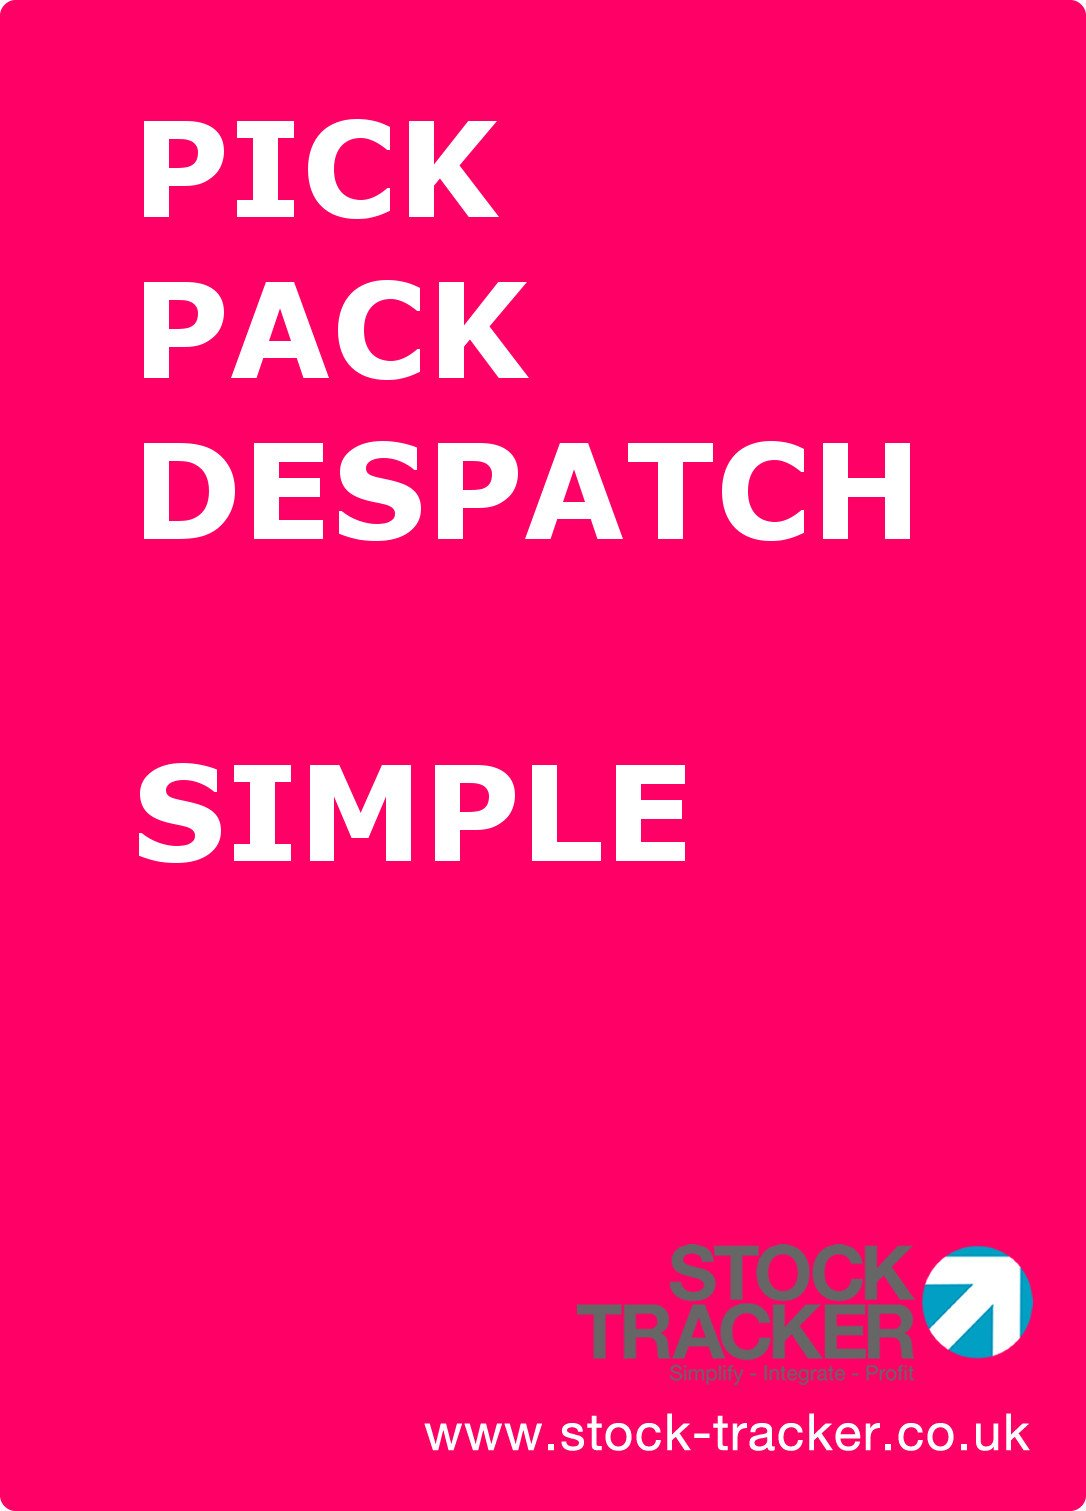 stock tracker on twitter pick pack despatch simple